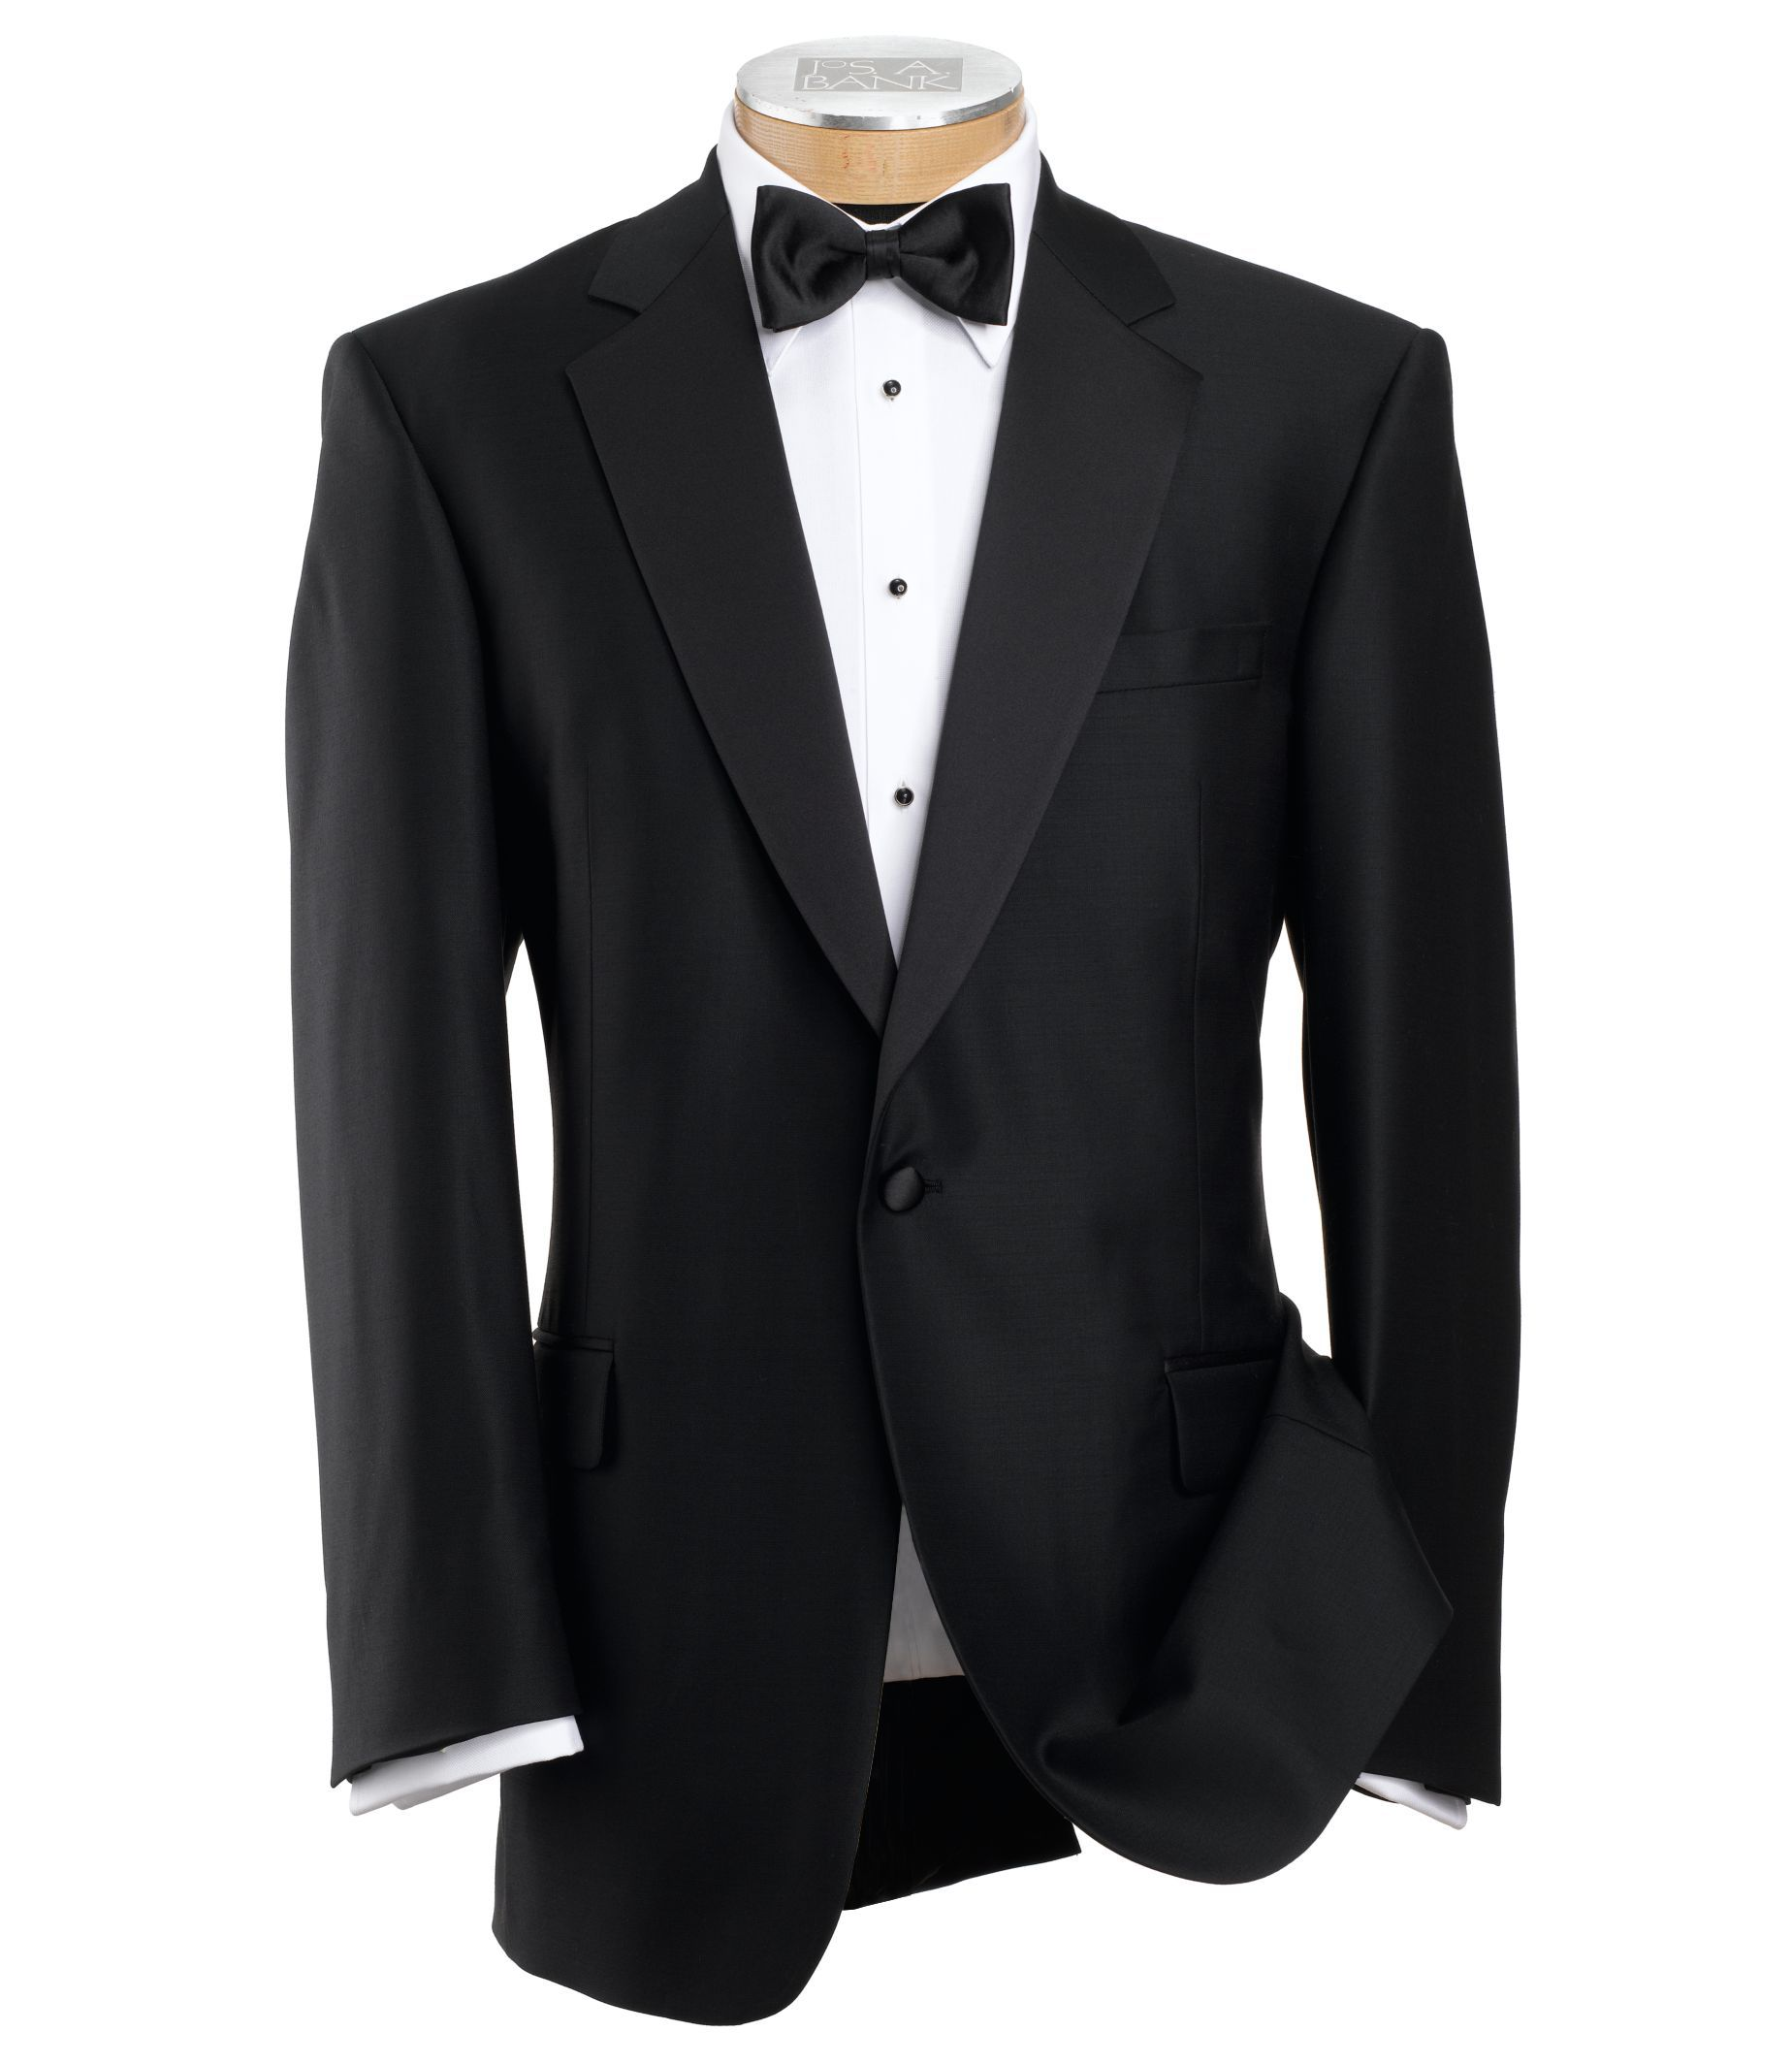 b54cfa9476c01 Signature Collection Traditional Fit Notch Lapel Tuxedo Jacket CLEARANCE